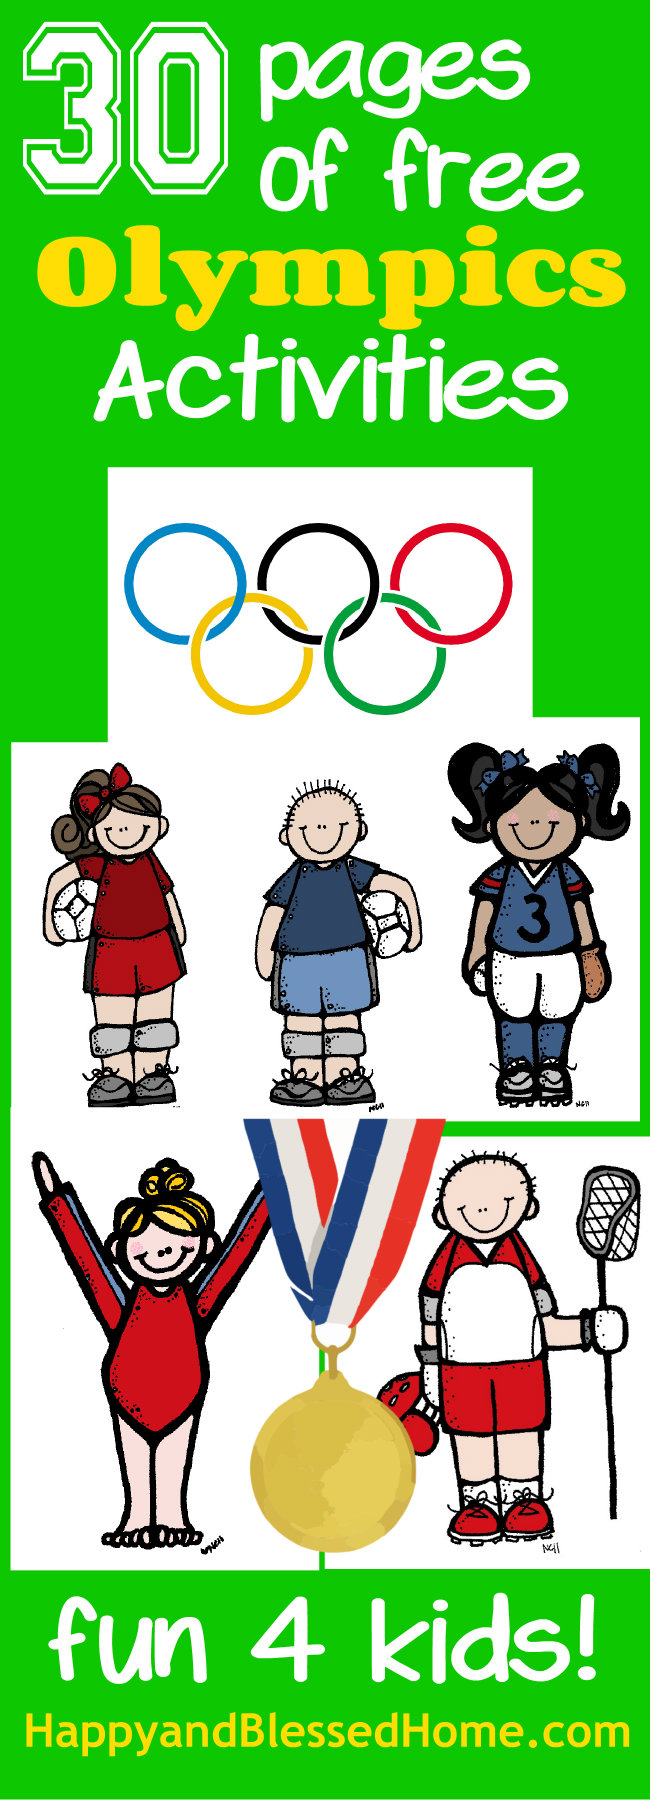 30 Pages of free Olympics Activities for Kids from HappyandBlessedHome.com